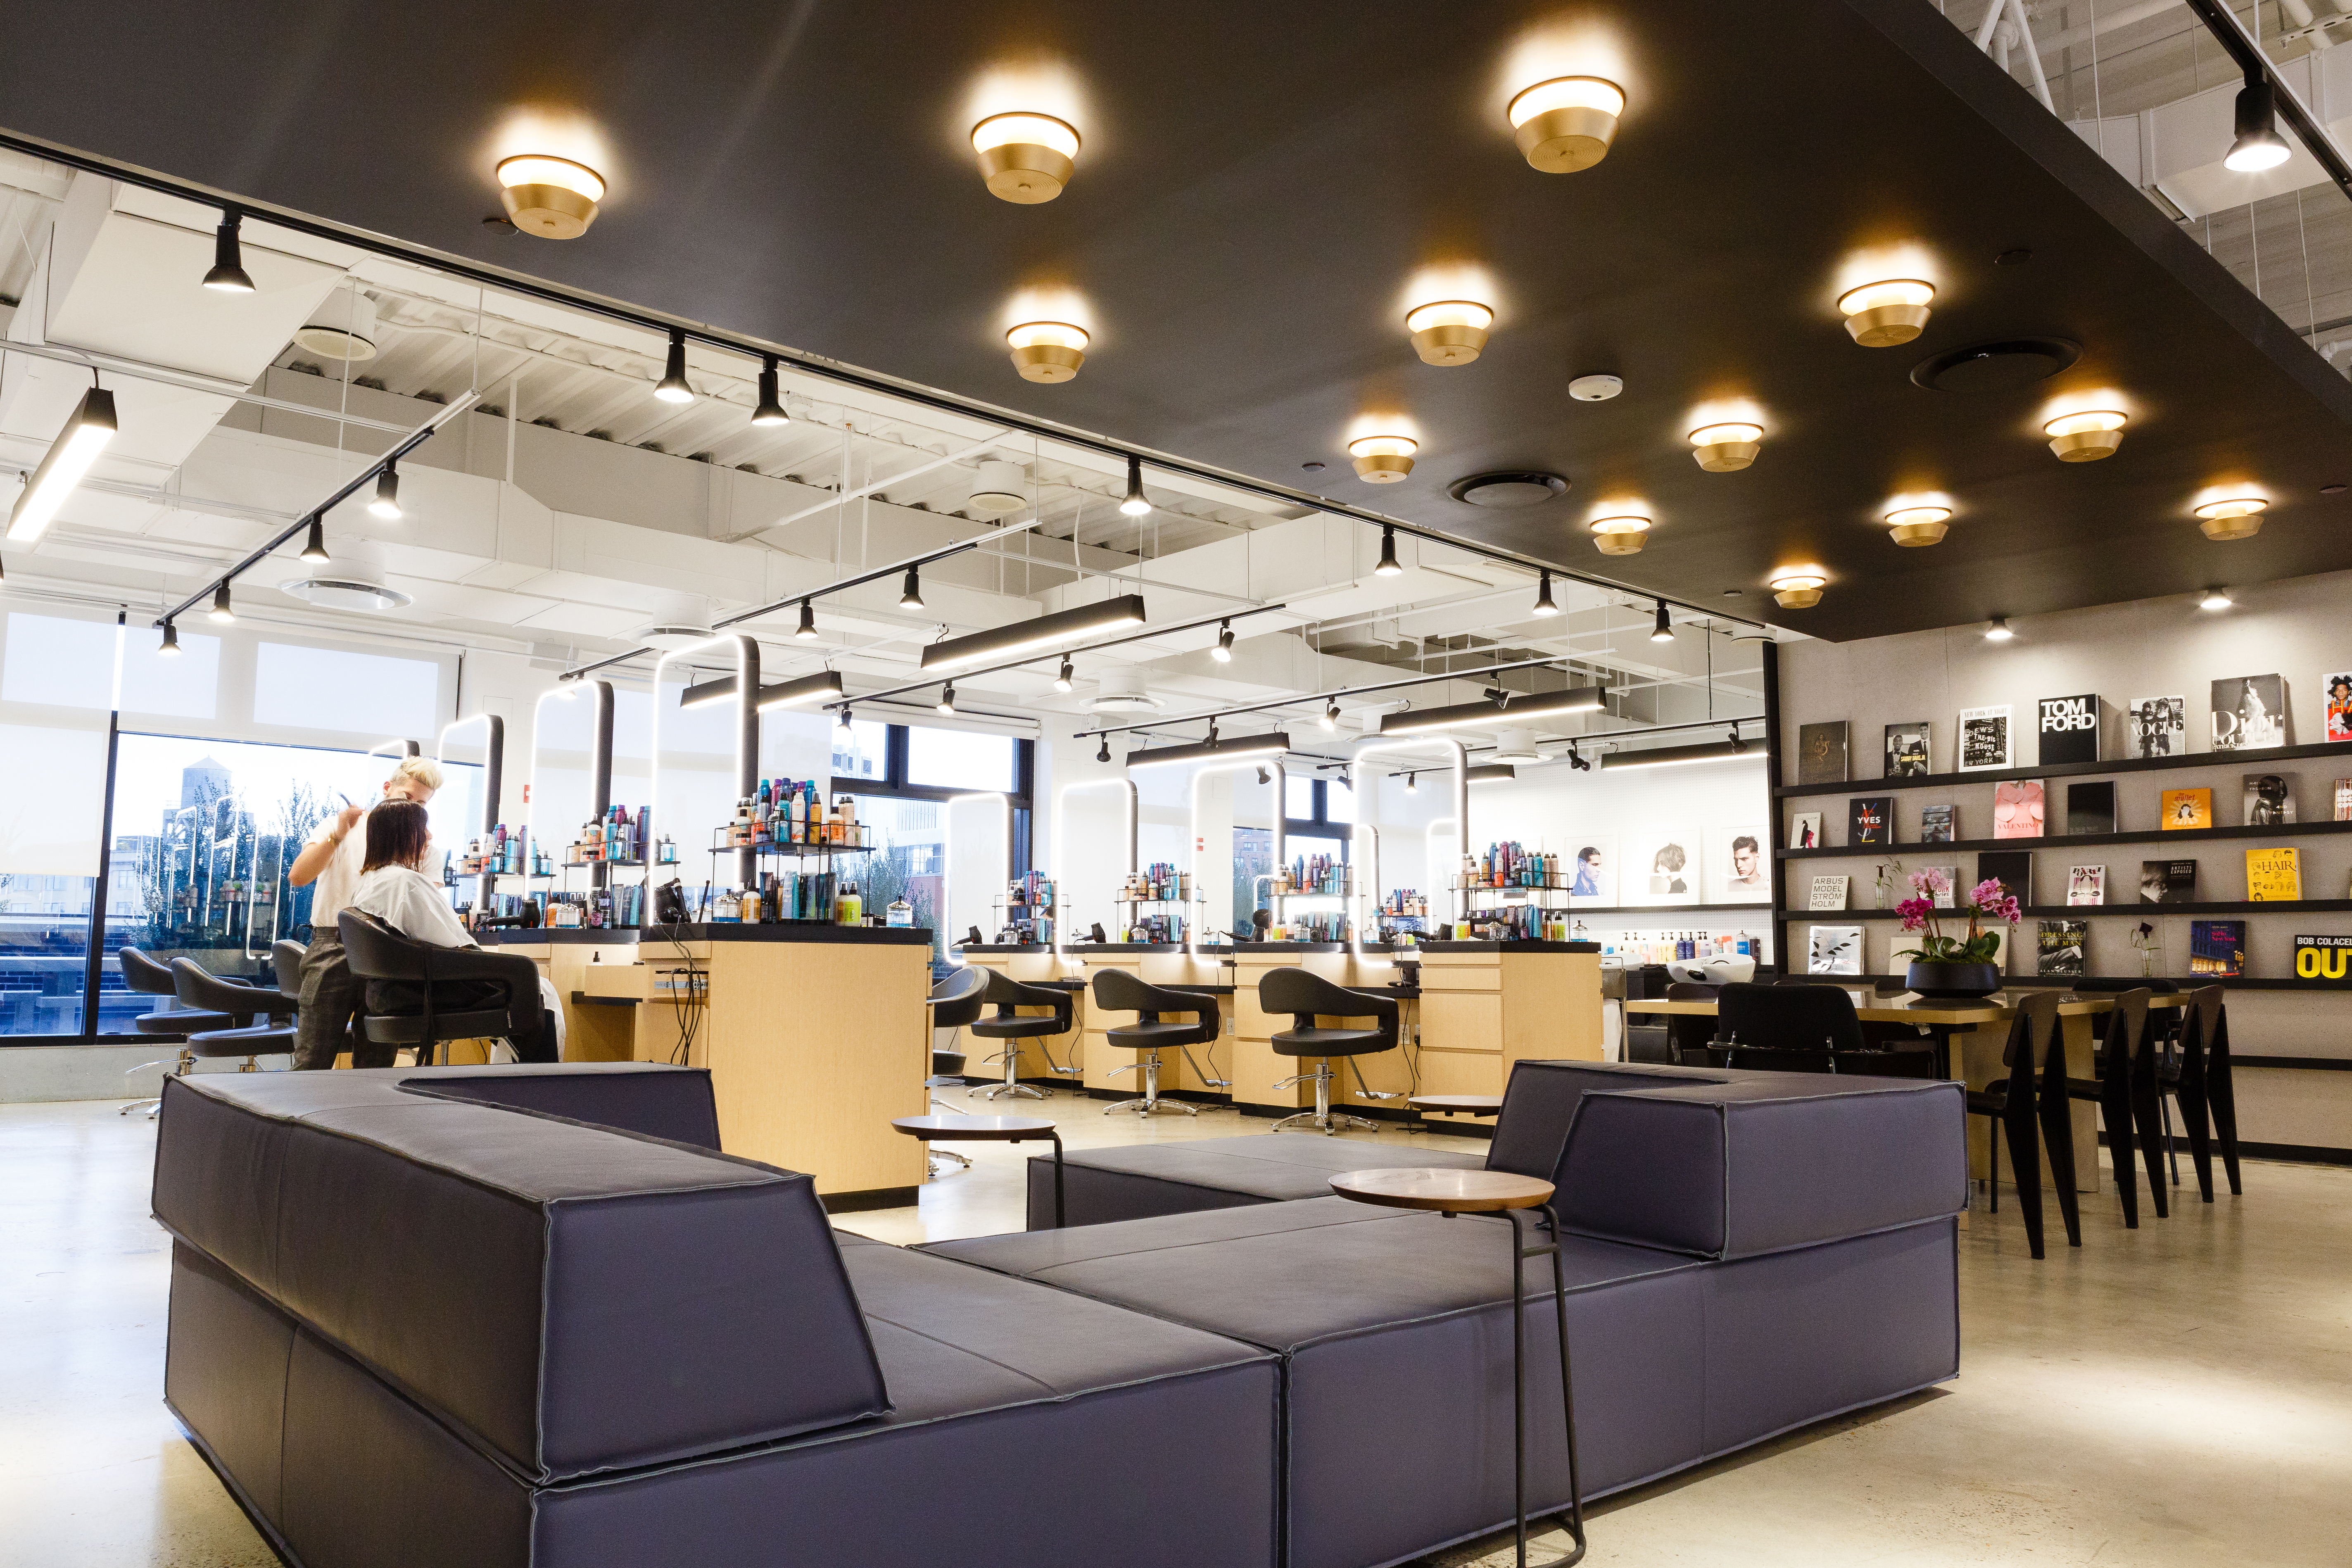 TOUR: The New Bumble and bumble Meatpacking District Salon in NYC